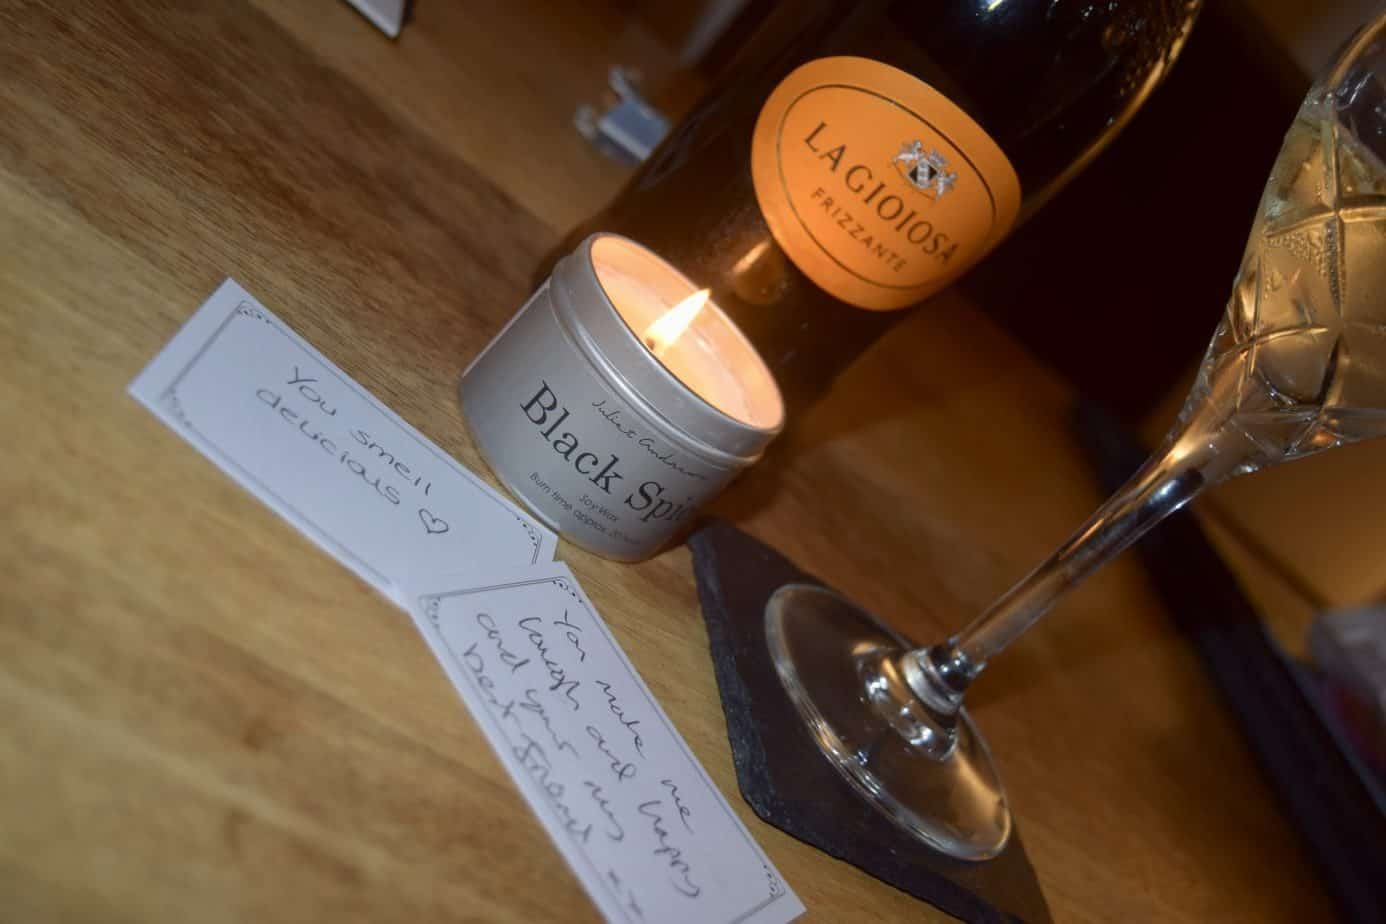 2 of our compliment cards with the candle, bottle of fizz and a wine glass